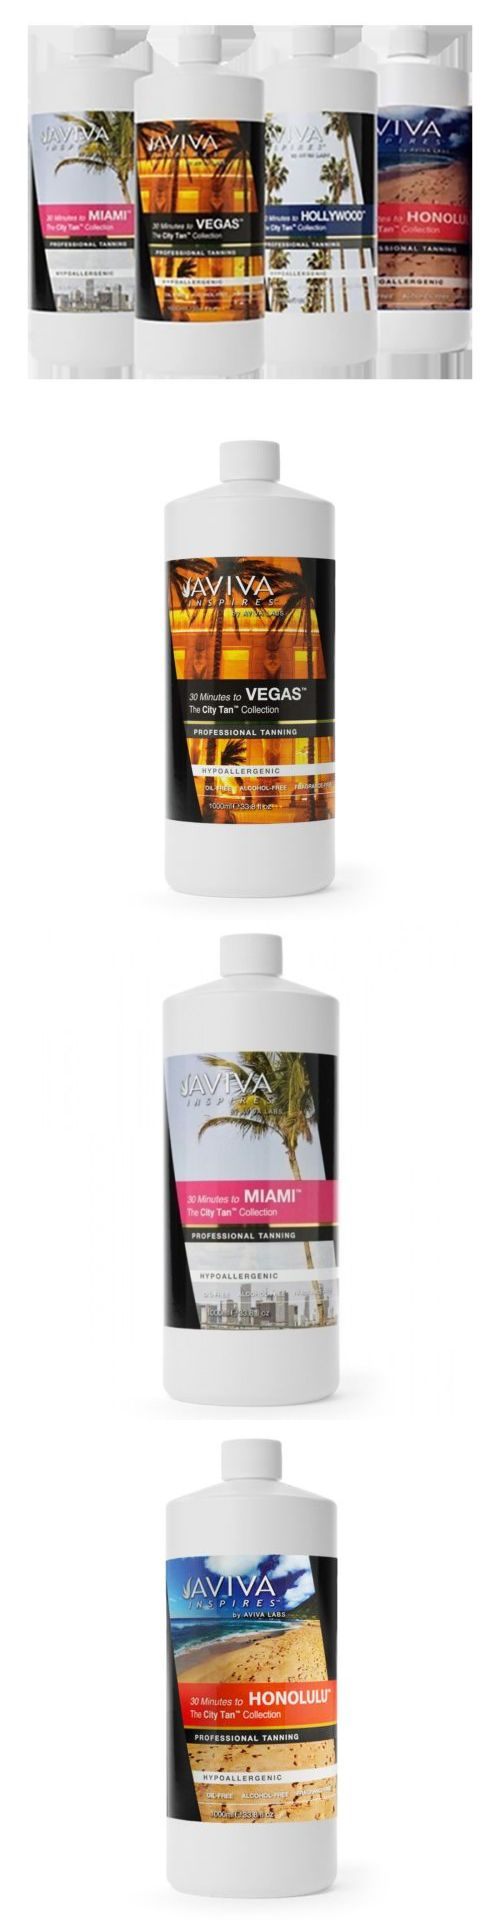 Other Sun Protection and Tanning: Aviva Inspires Airbrush Spray Tanning Solution - 1 Liter Vegas, Miami, Honolulu -> BUY IT NOW ONLY: $90 on eBay!